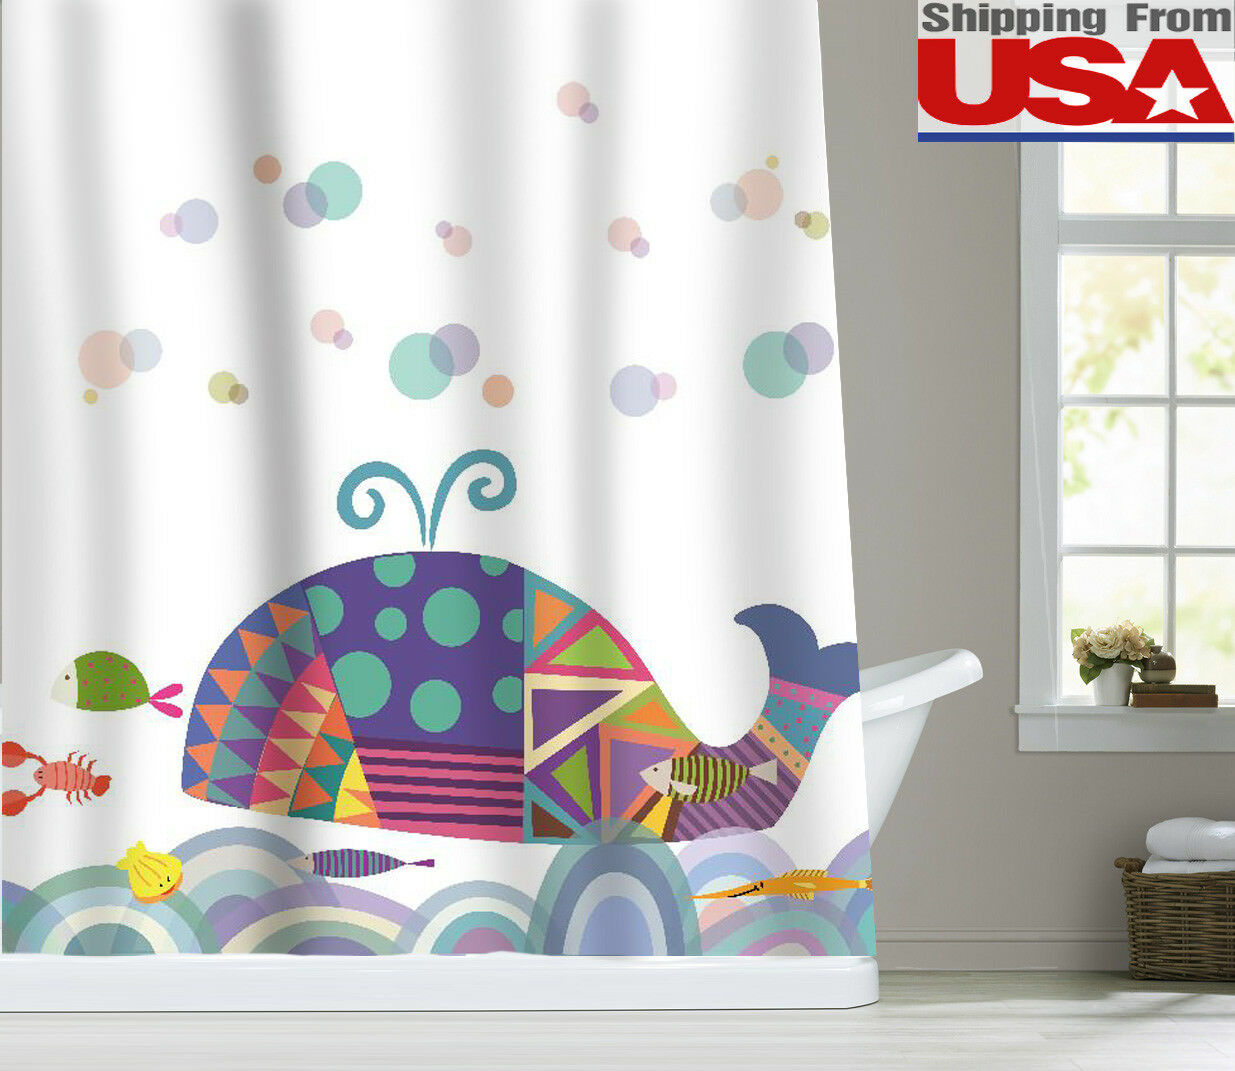 Colorful Whale Waterproof Fabric Shower Curtain Bathroom Decor ...